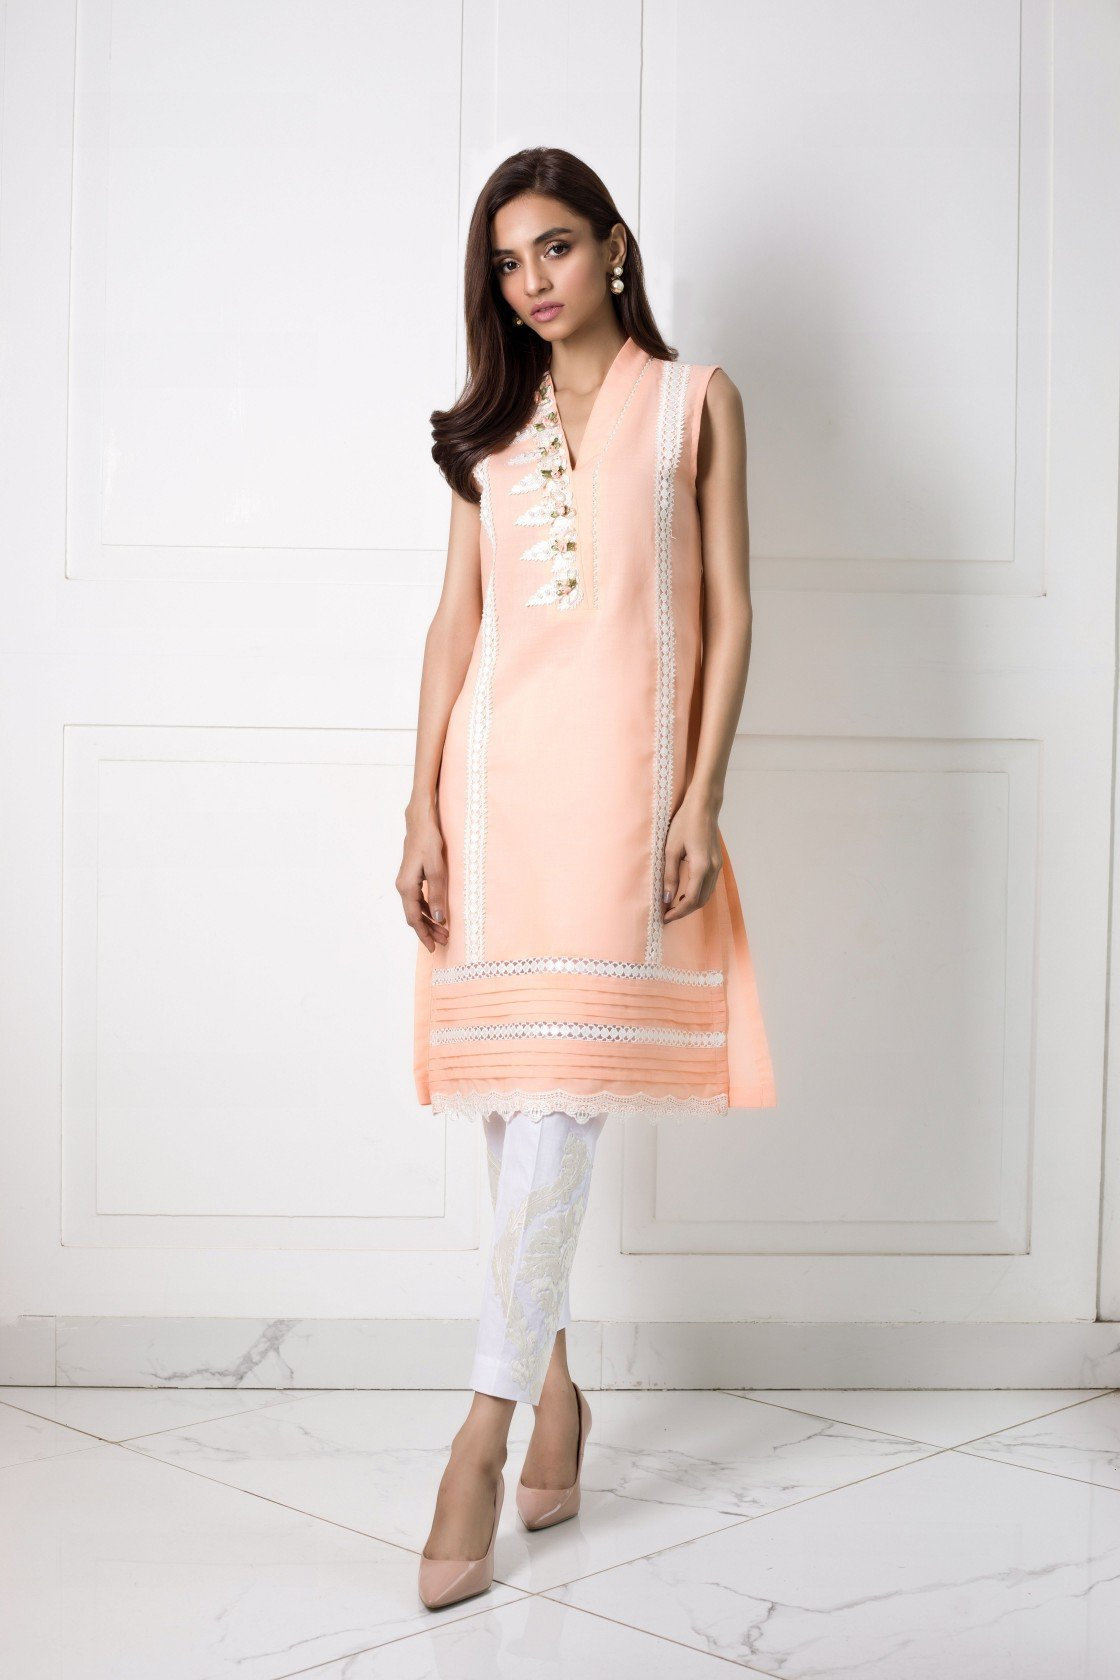 Shehrnaz- -Peach Shirt with Floral Applique